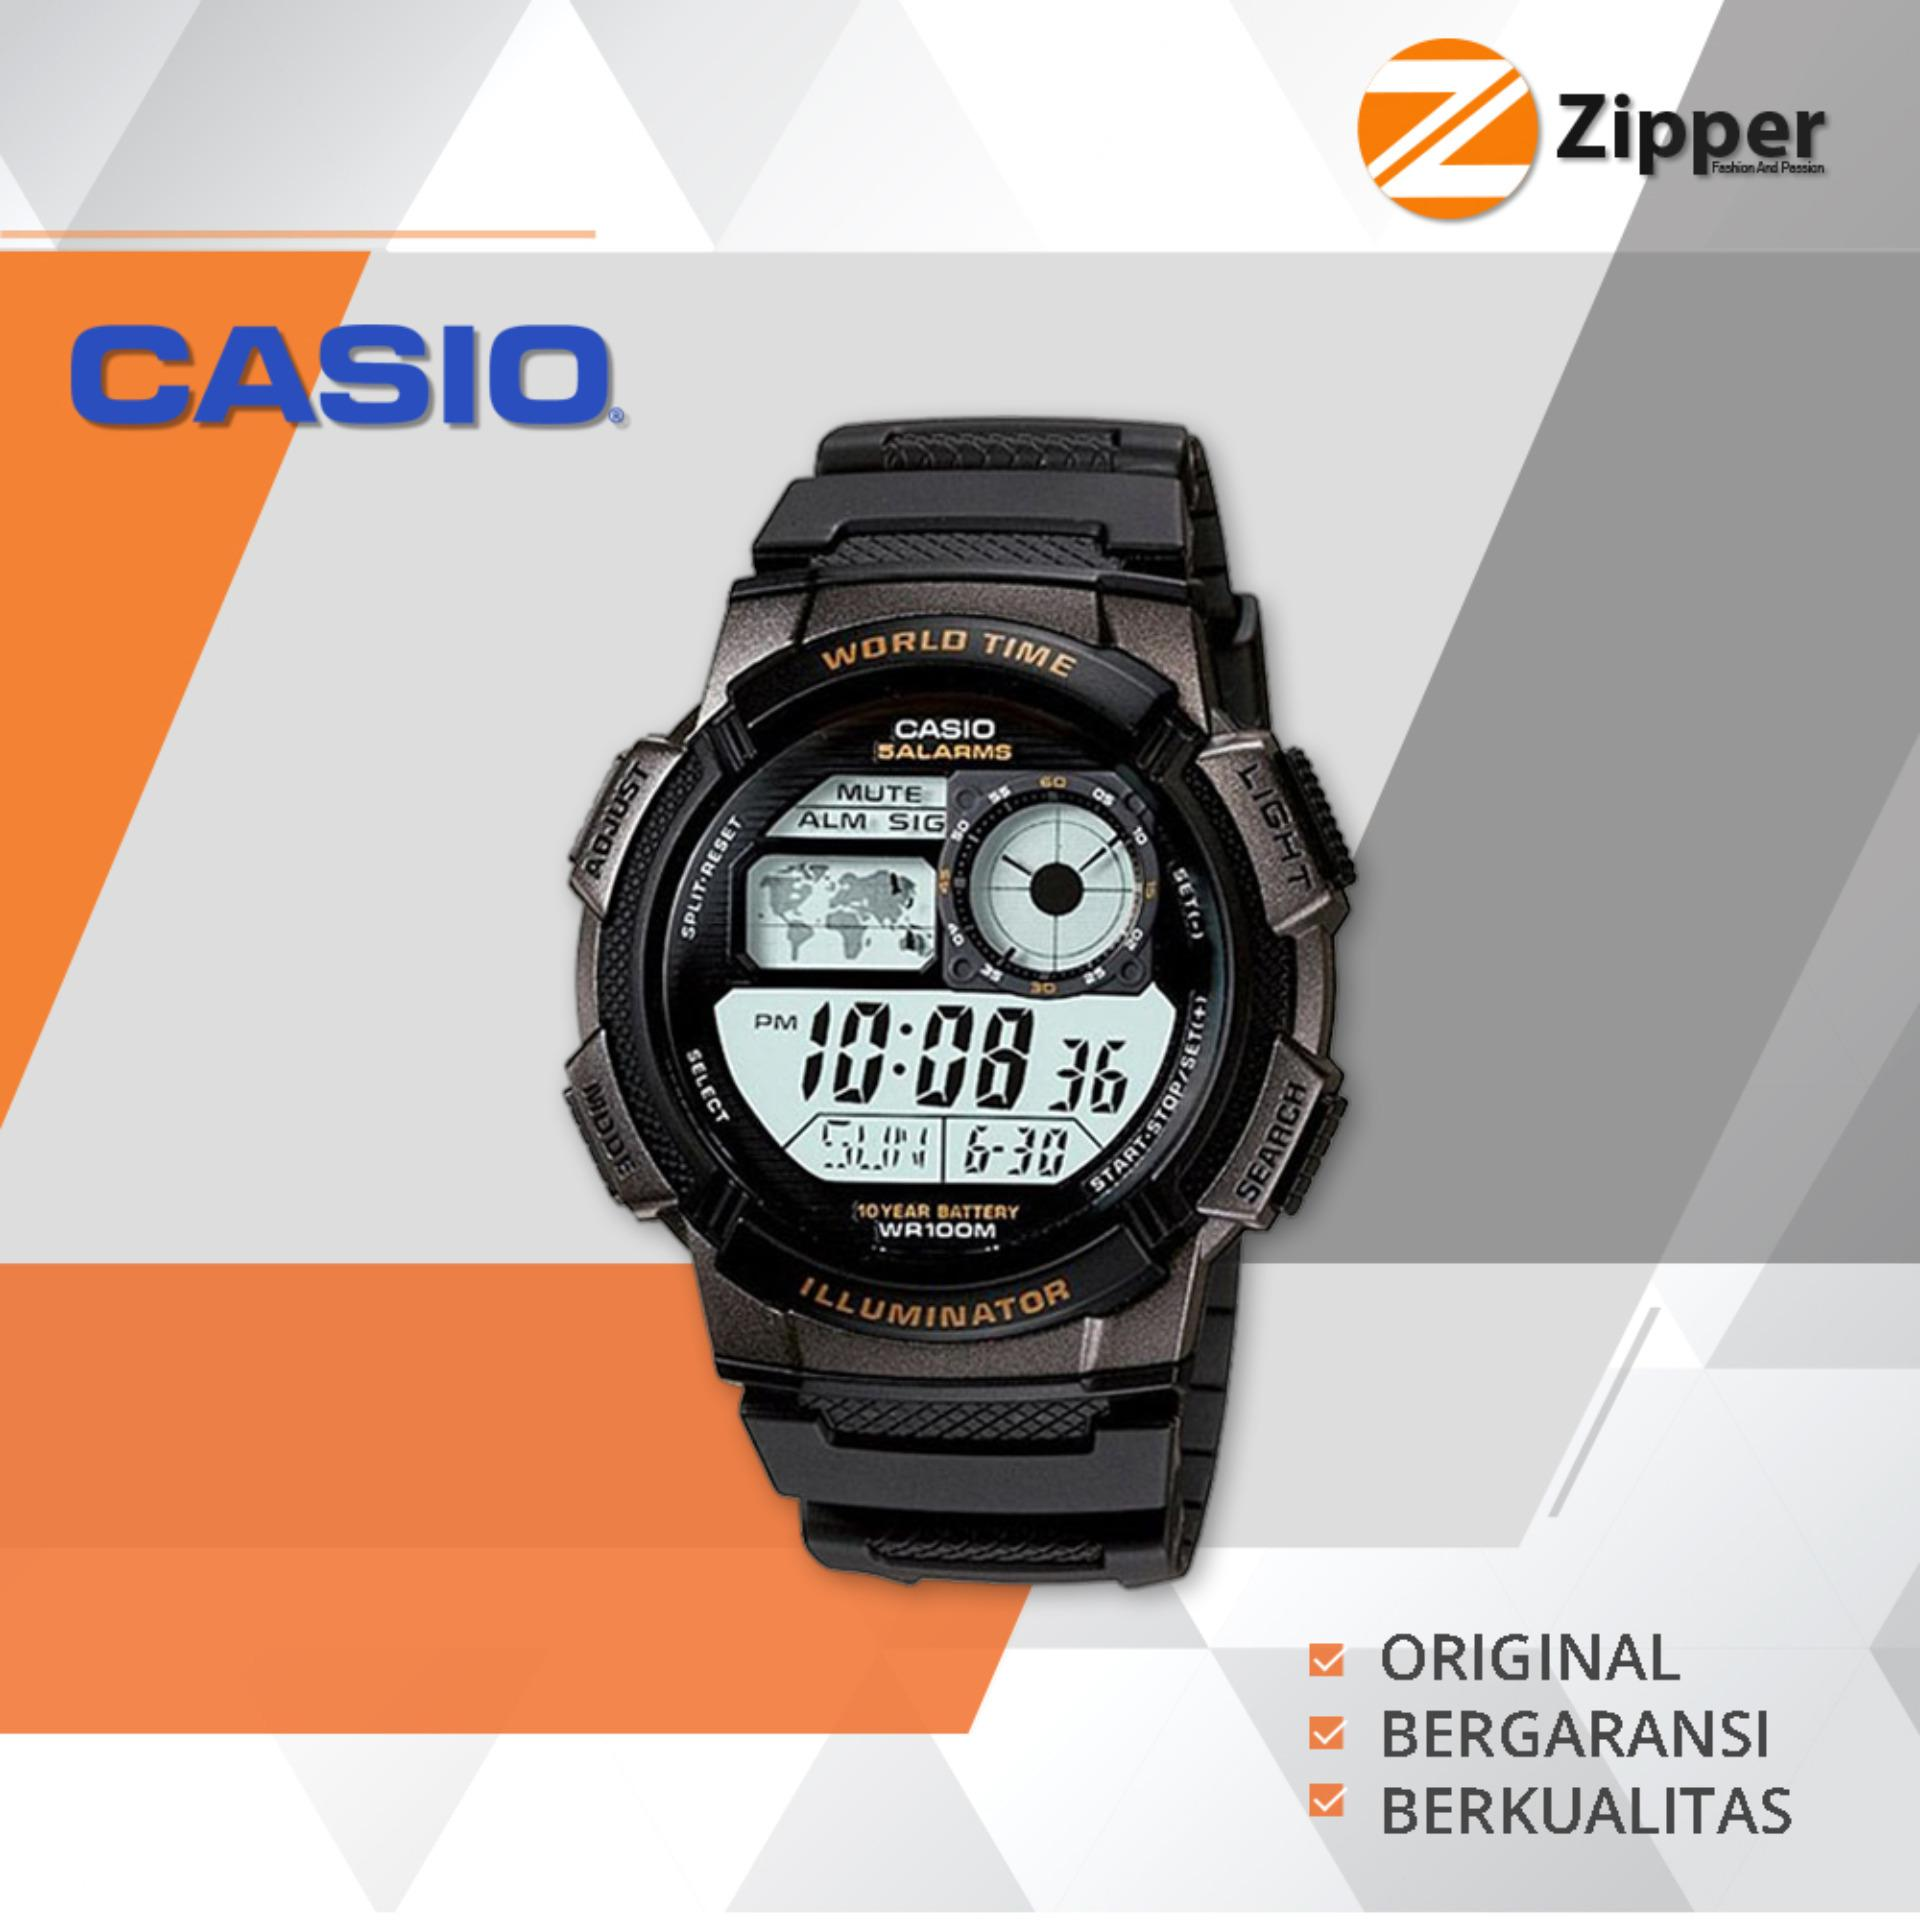 Katalog Casio Illuminator Jam Tangan Digital Ae 1000W 1Bvdf Youth Series Tali Resin Casio Terbaru